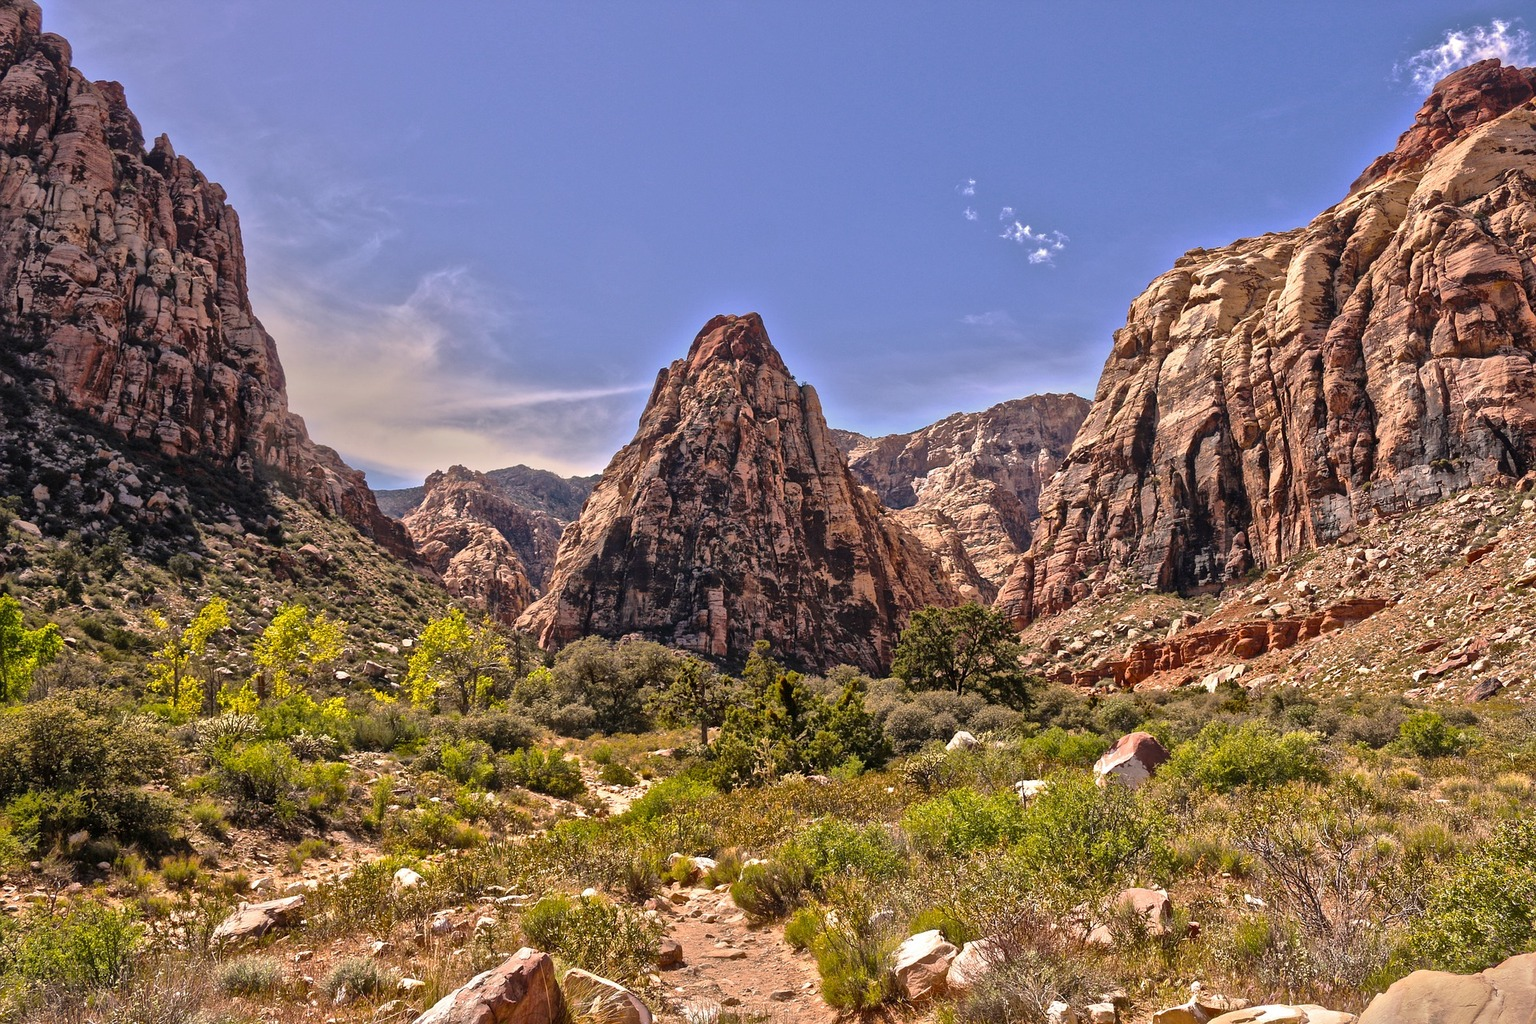 Head out to Red Rock Canyon for some stunning views.